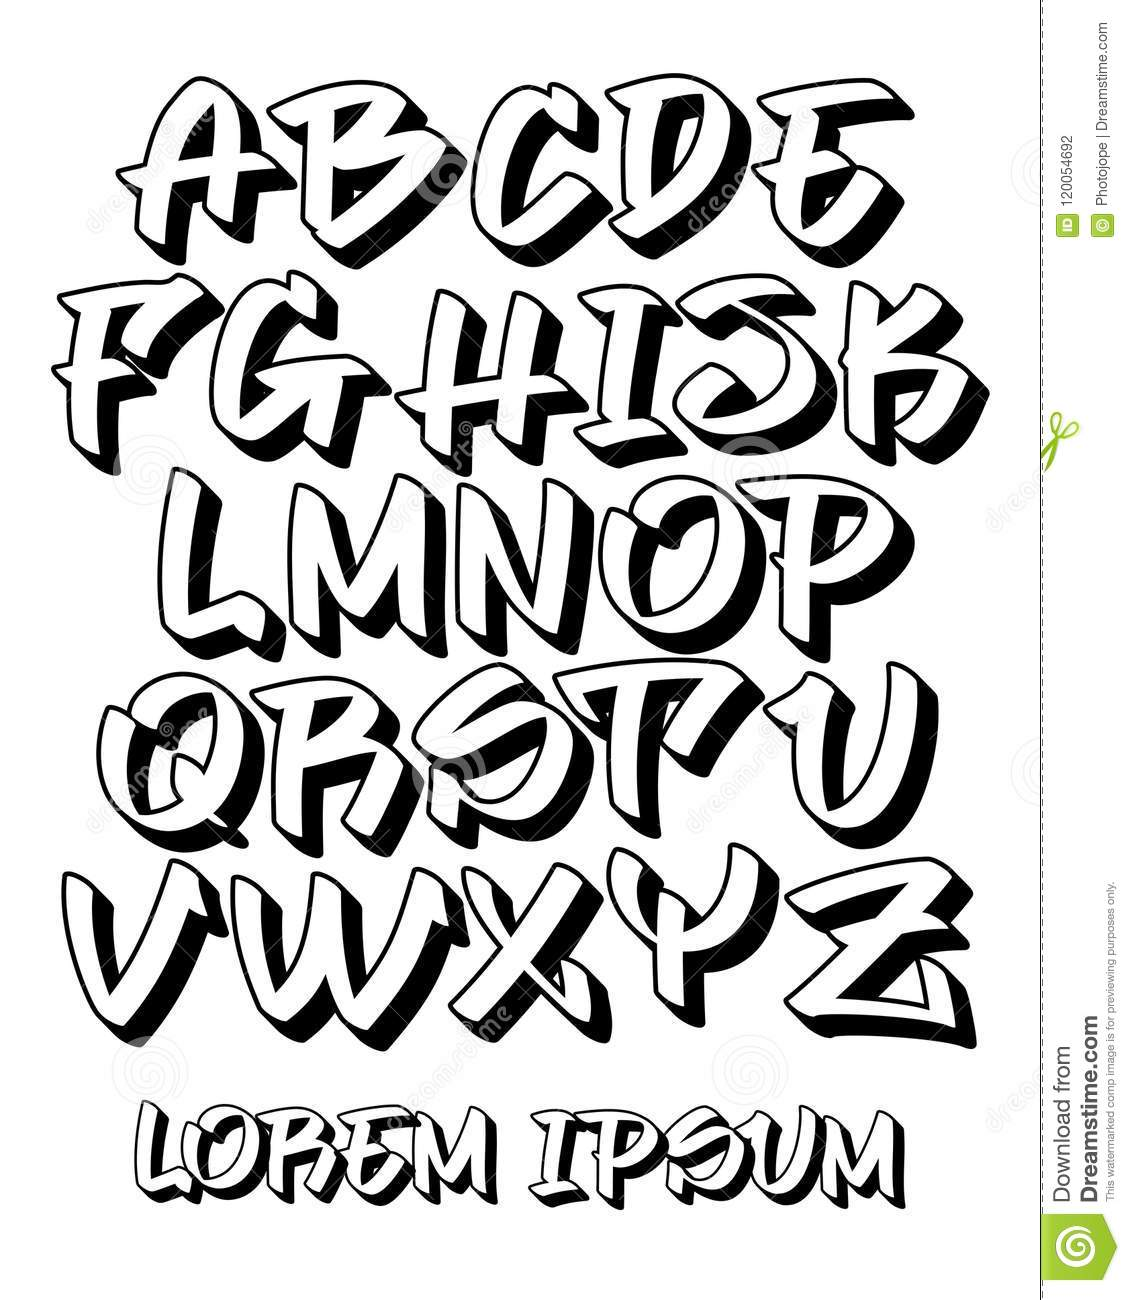 Vectorial font in readable graffiti hand written 3d style capital letters alphabet customizable colors